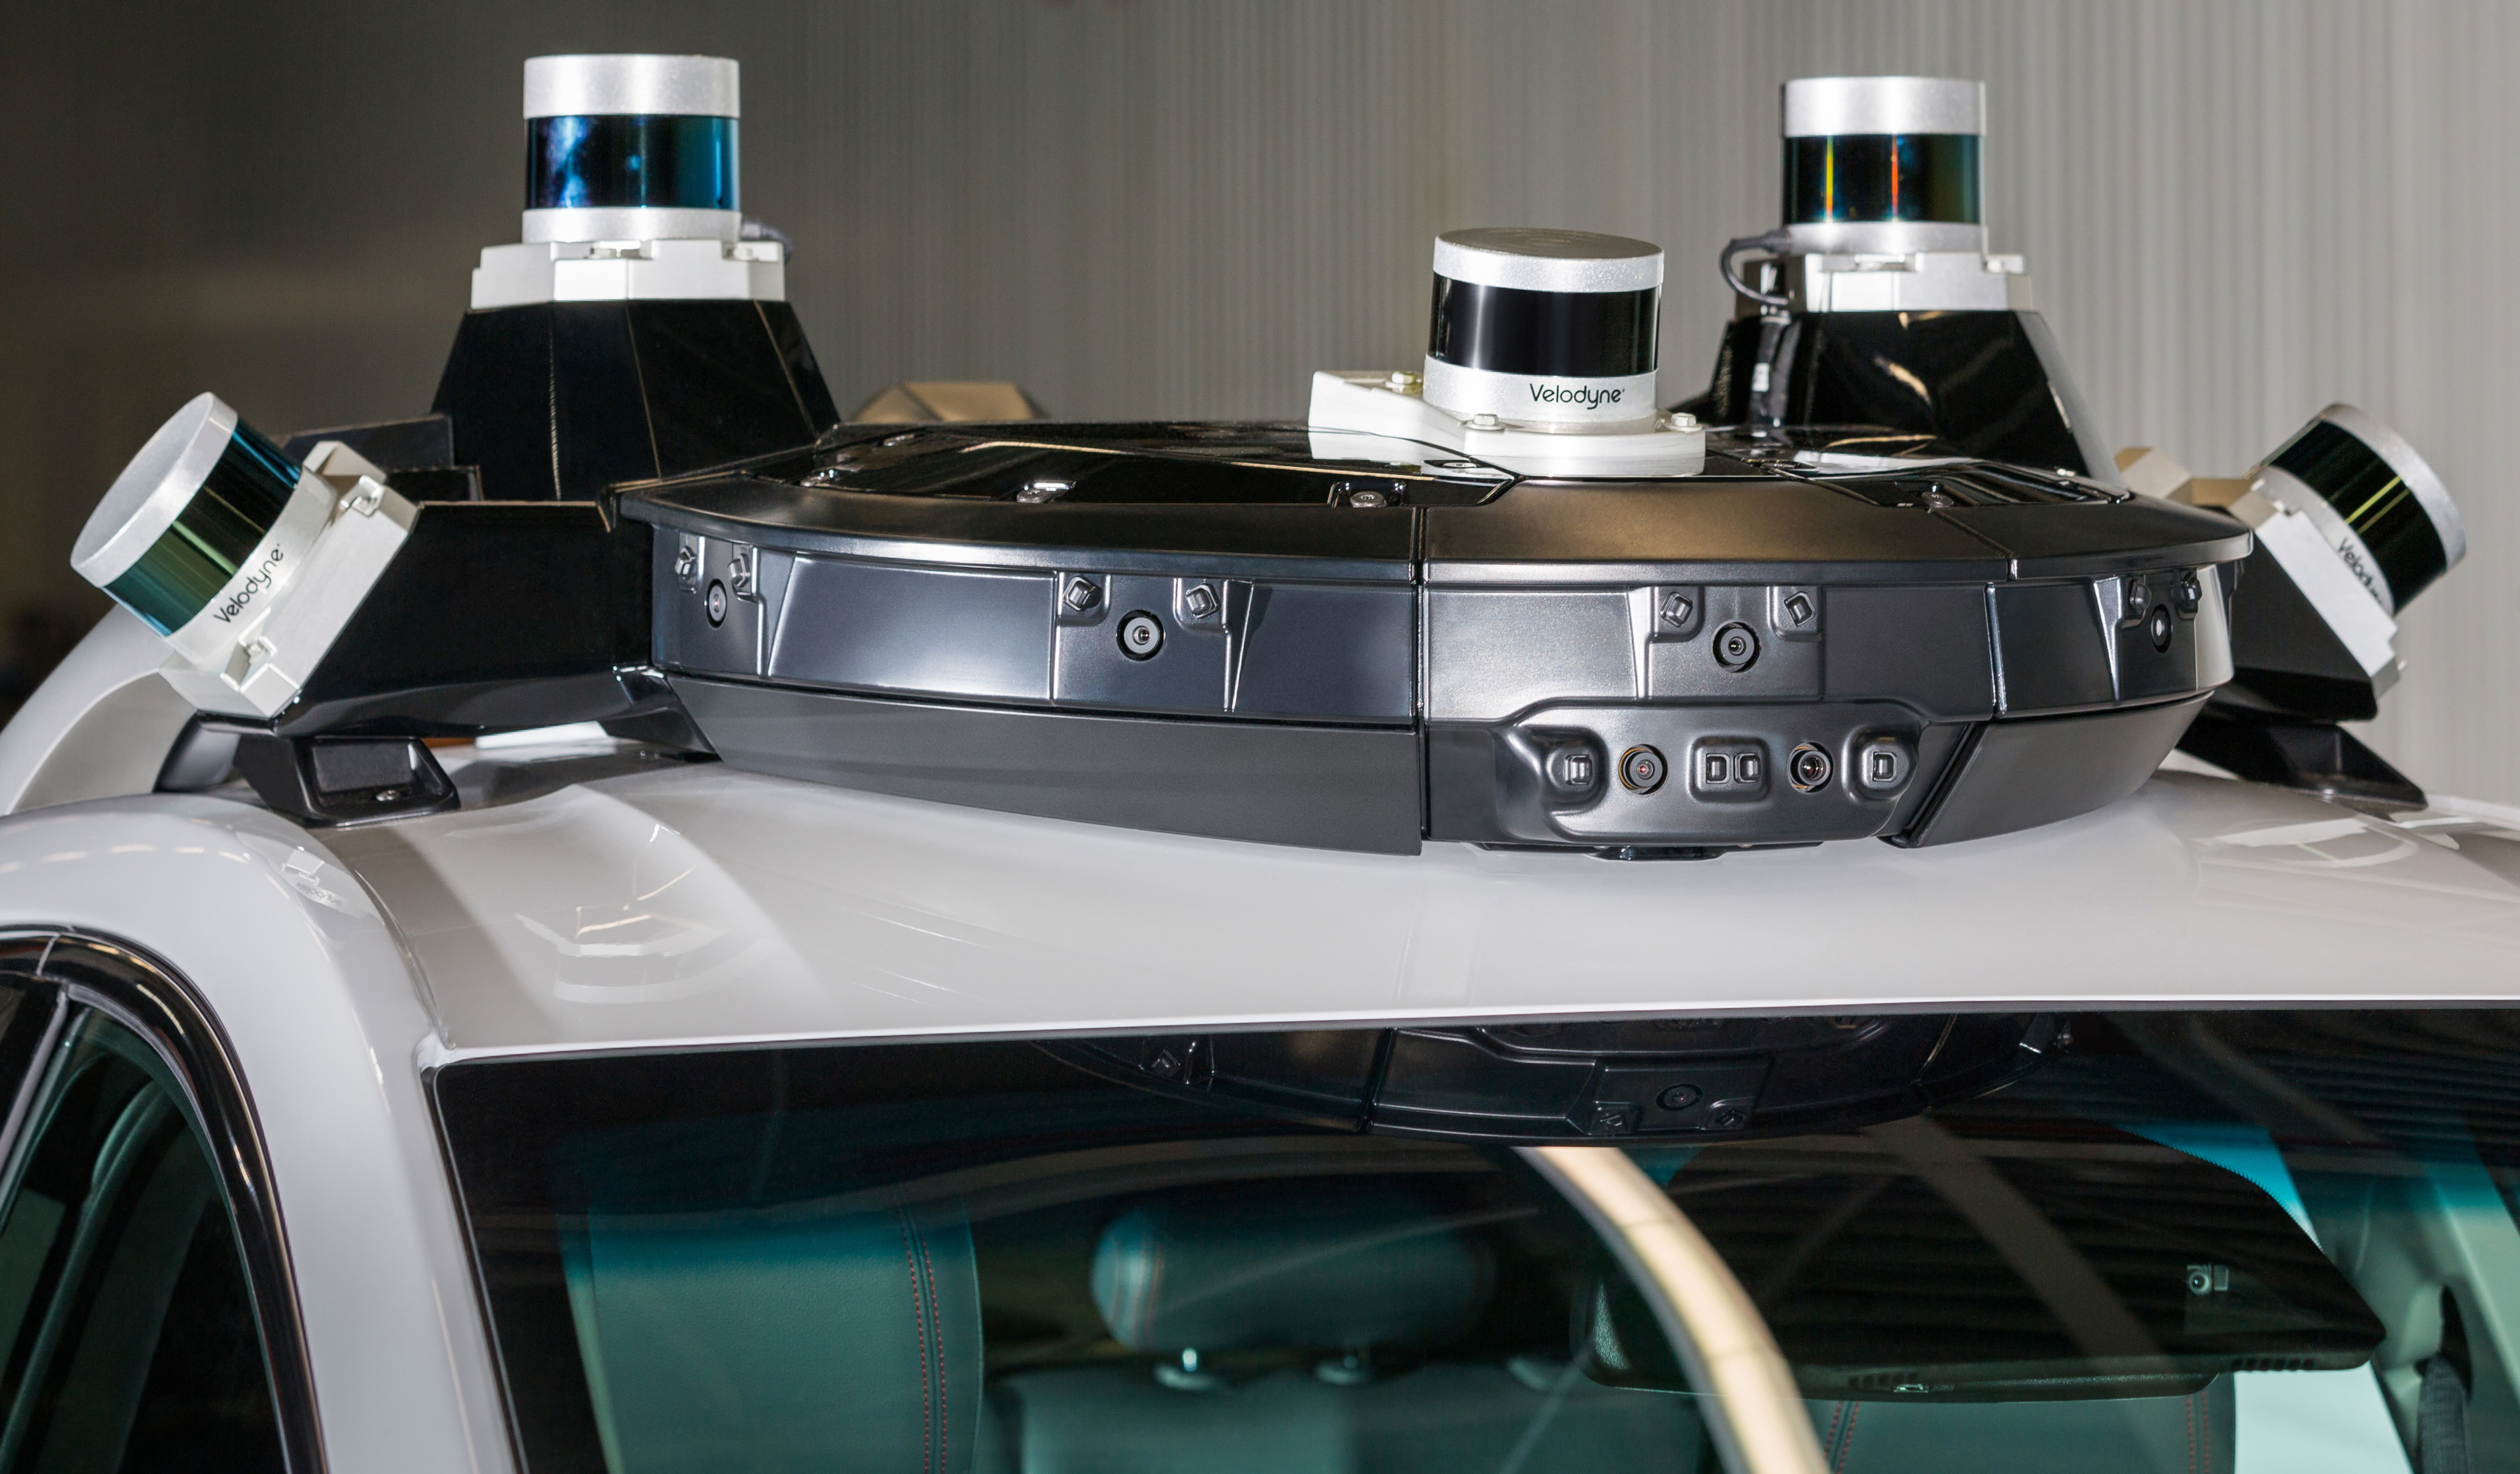 Sensors on top of a Cruise vehicle.